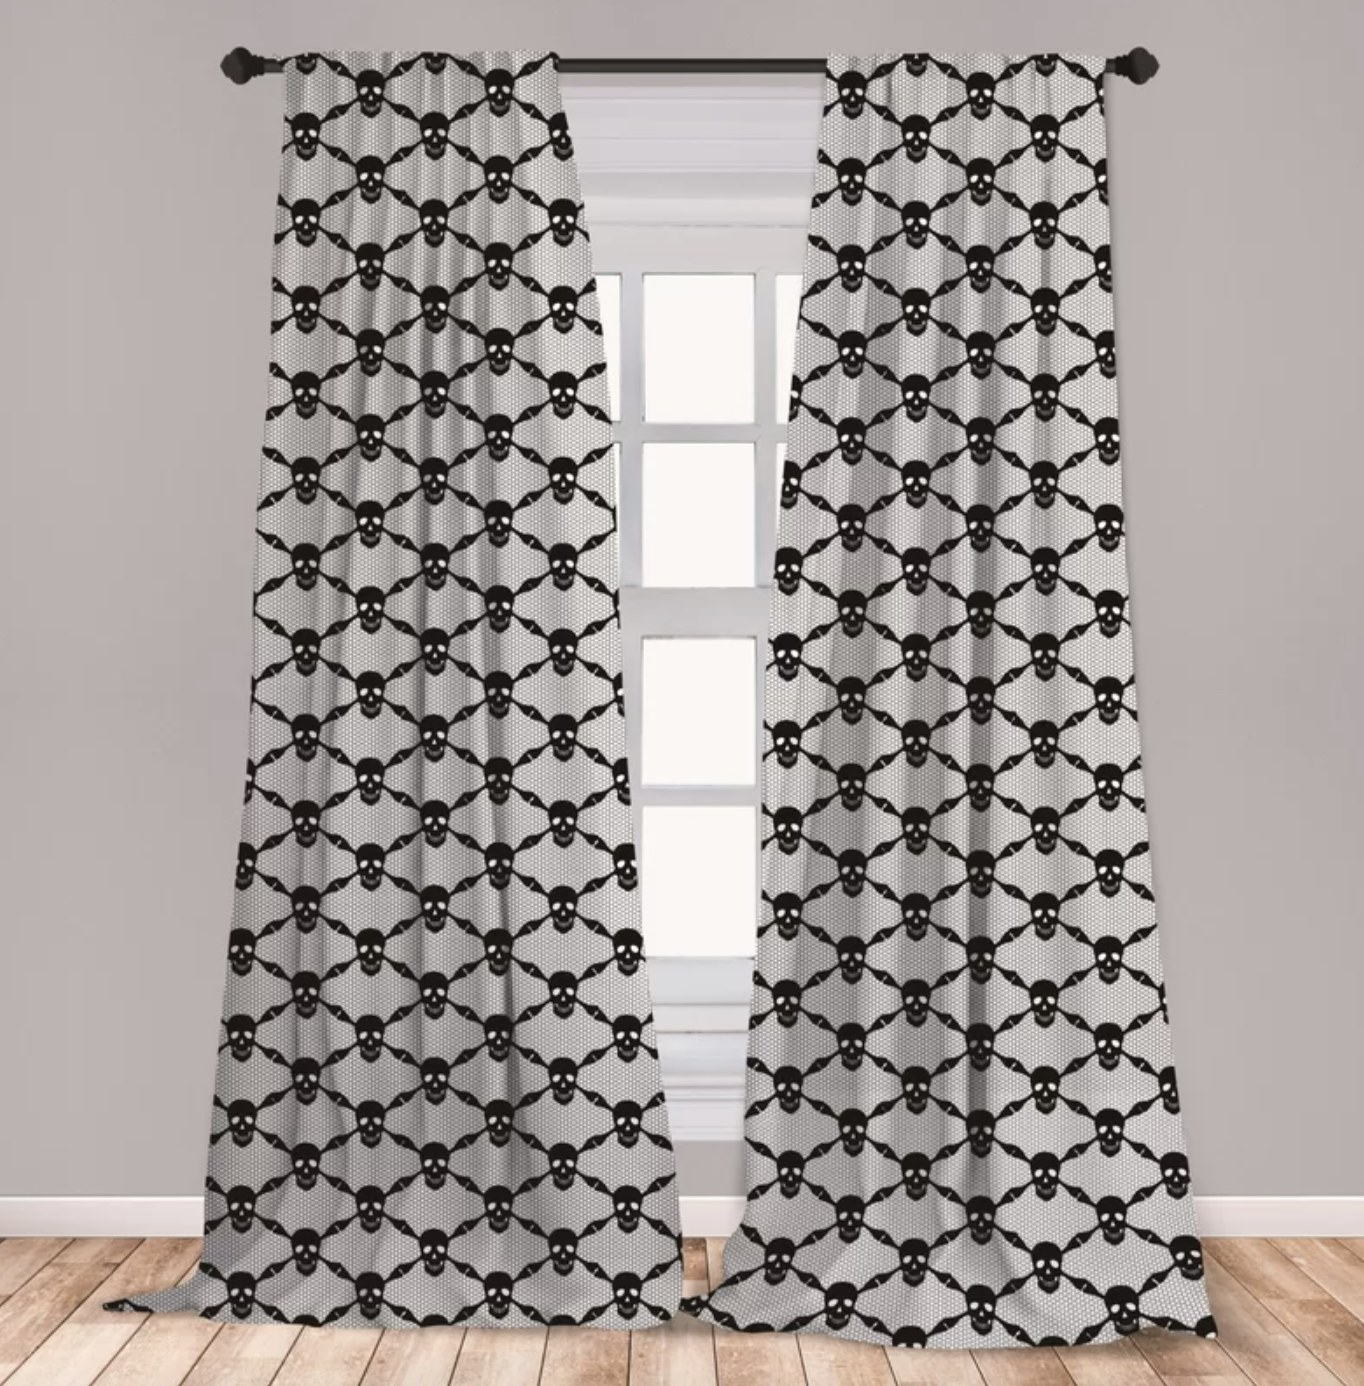 The checkered skull curtains are connected with skeleton bones